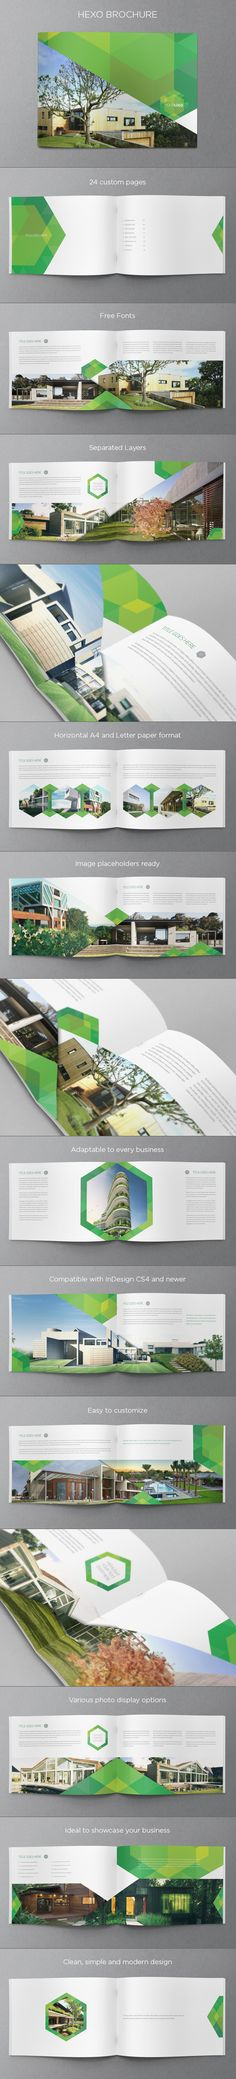 Ecologic Real Estate Hexo Brochure. Download here: http://graphicriver.net/item/real-estate-ecologic-brochure/5879542?ref=abradesign #design #brochure